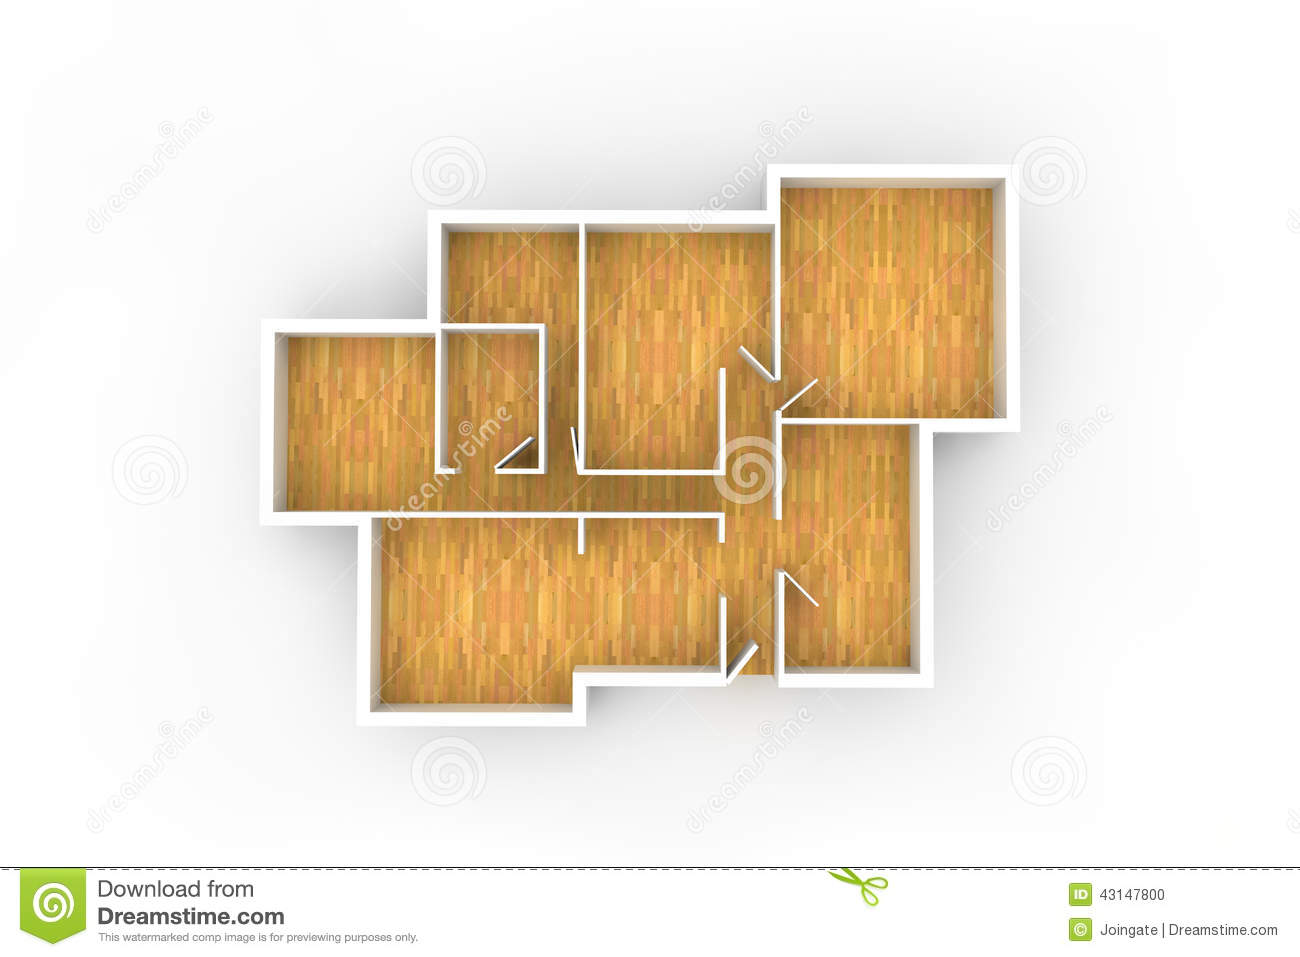 Floorplan for typical house or office building with wooden for Hardwood floor plans